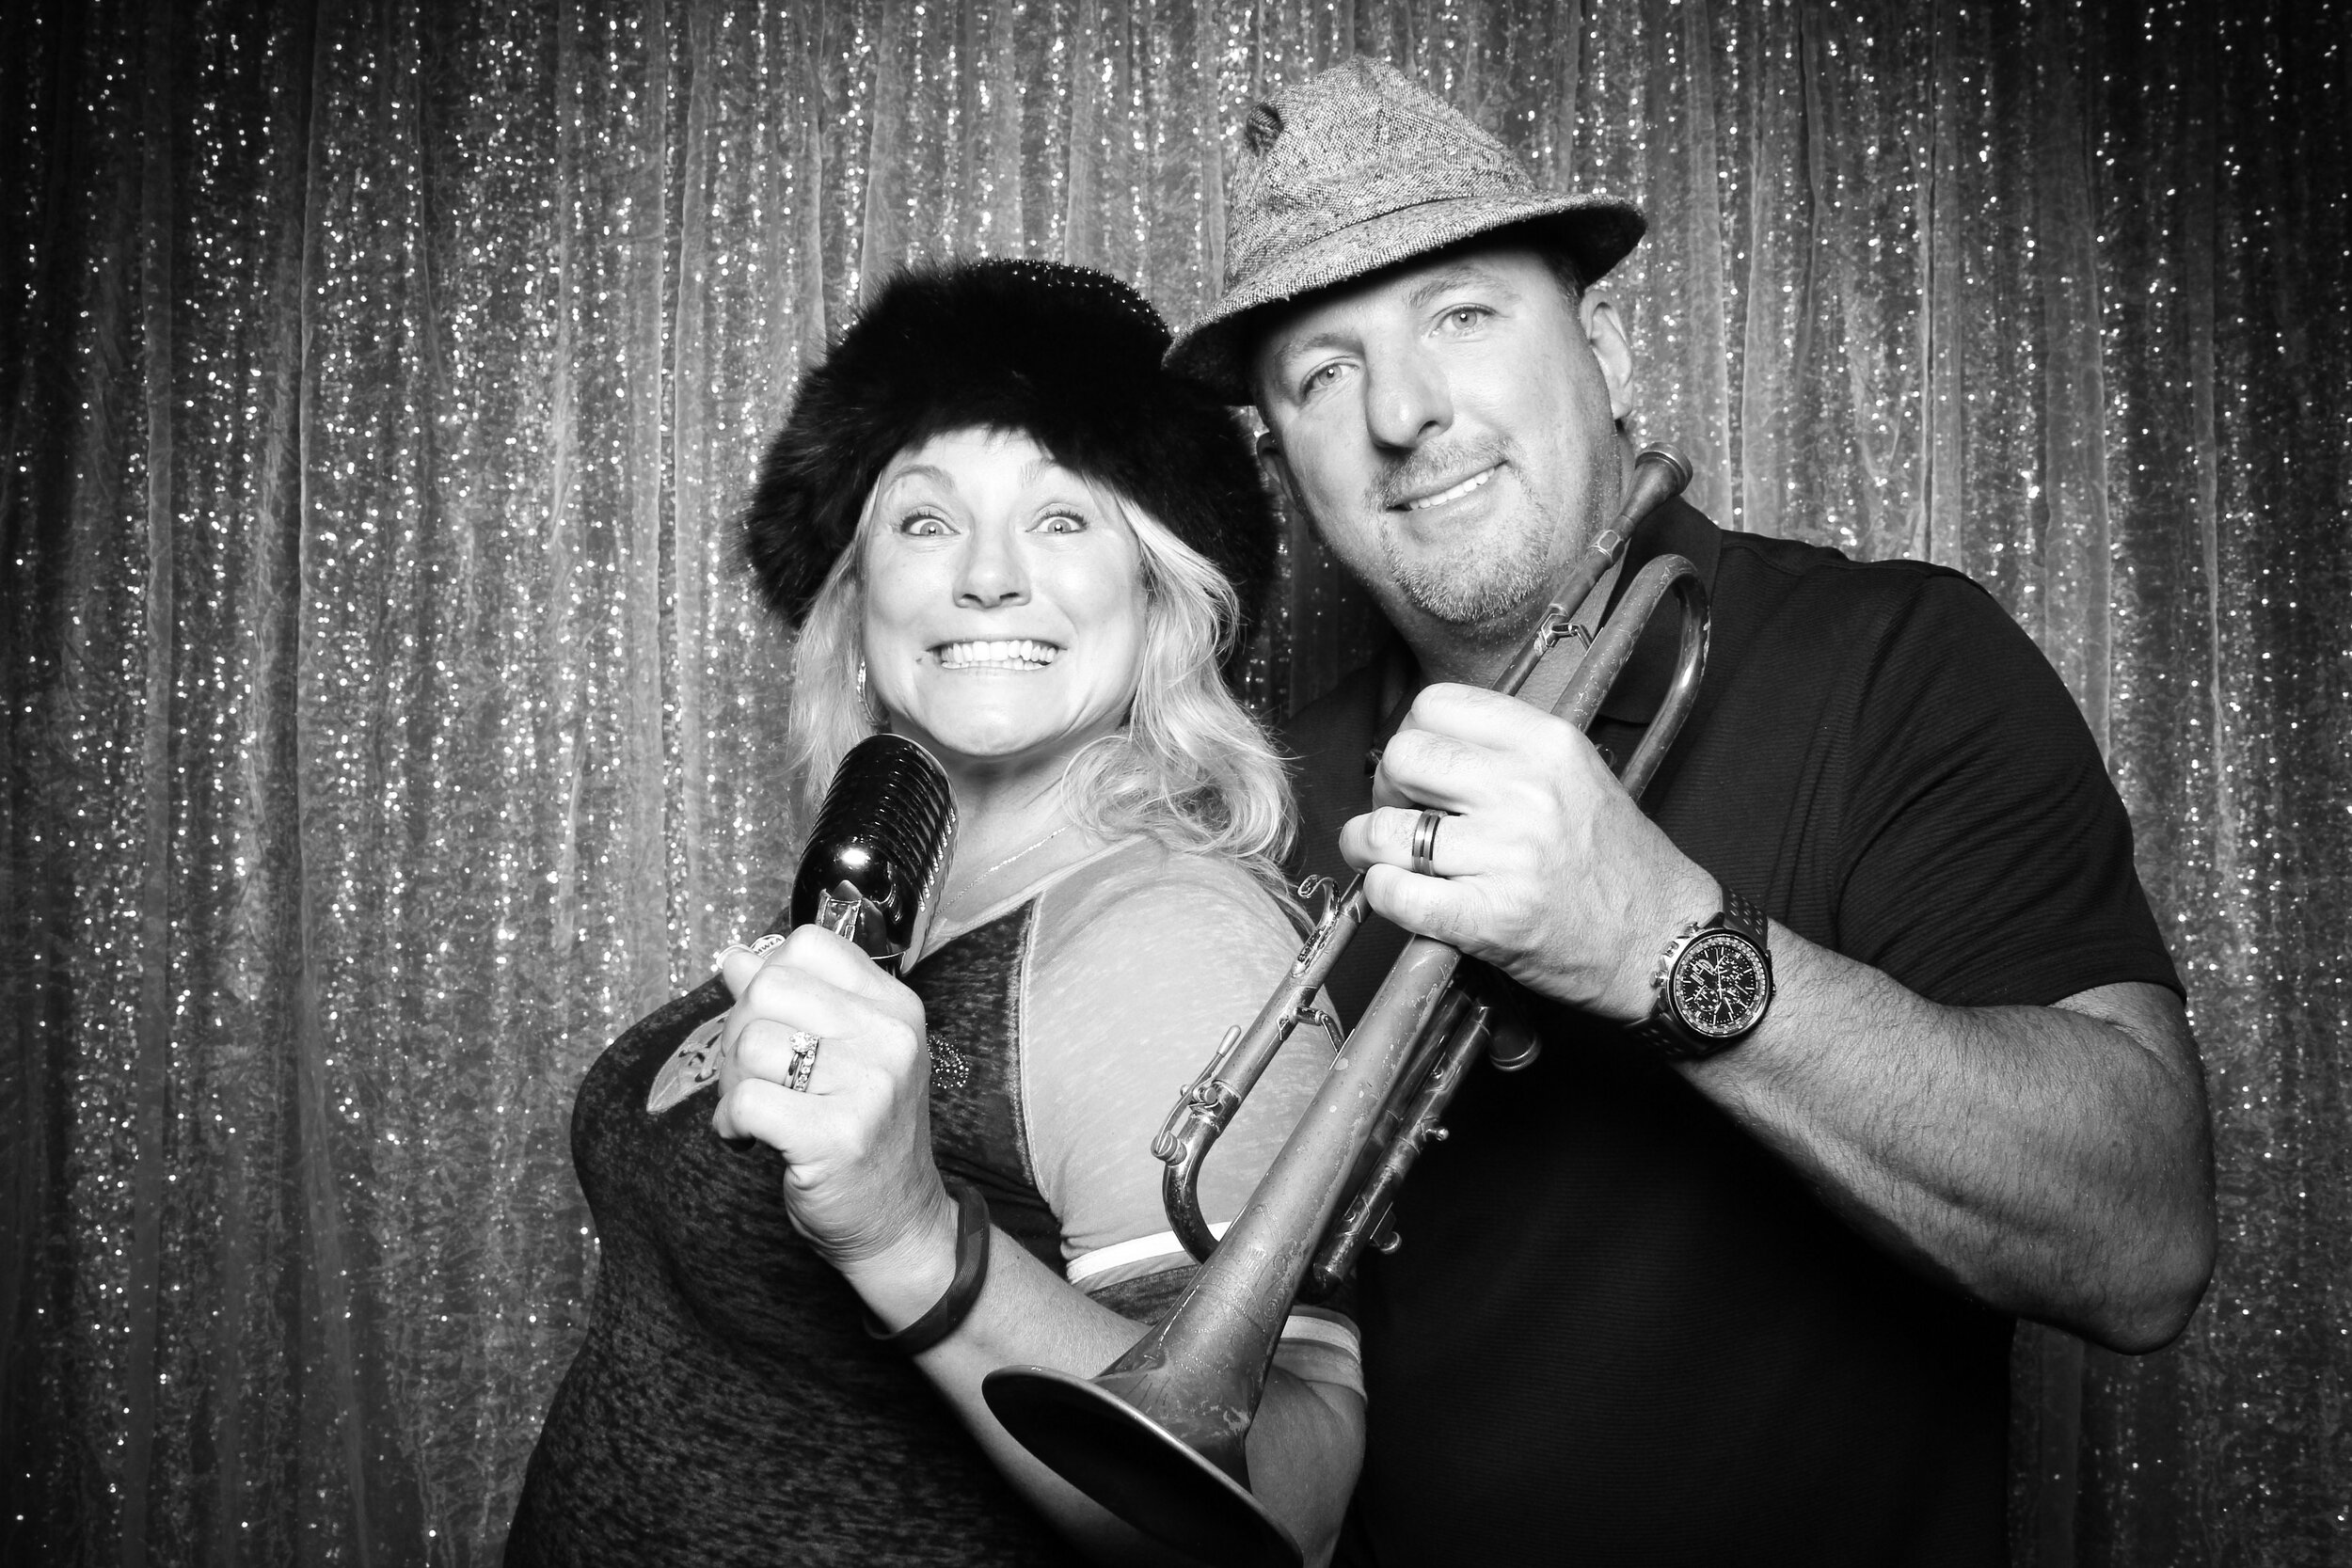 Chicago_Vintage_Wedding_Photobooth_House_of_Blues_24.jpg